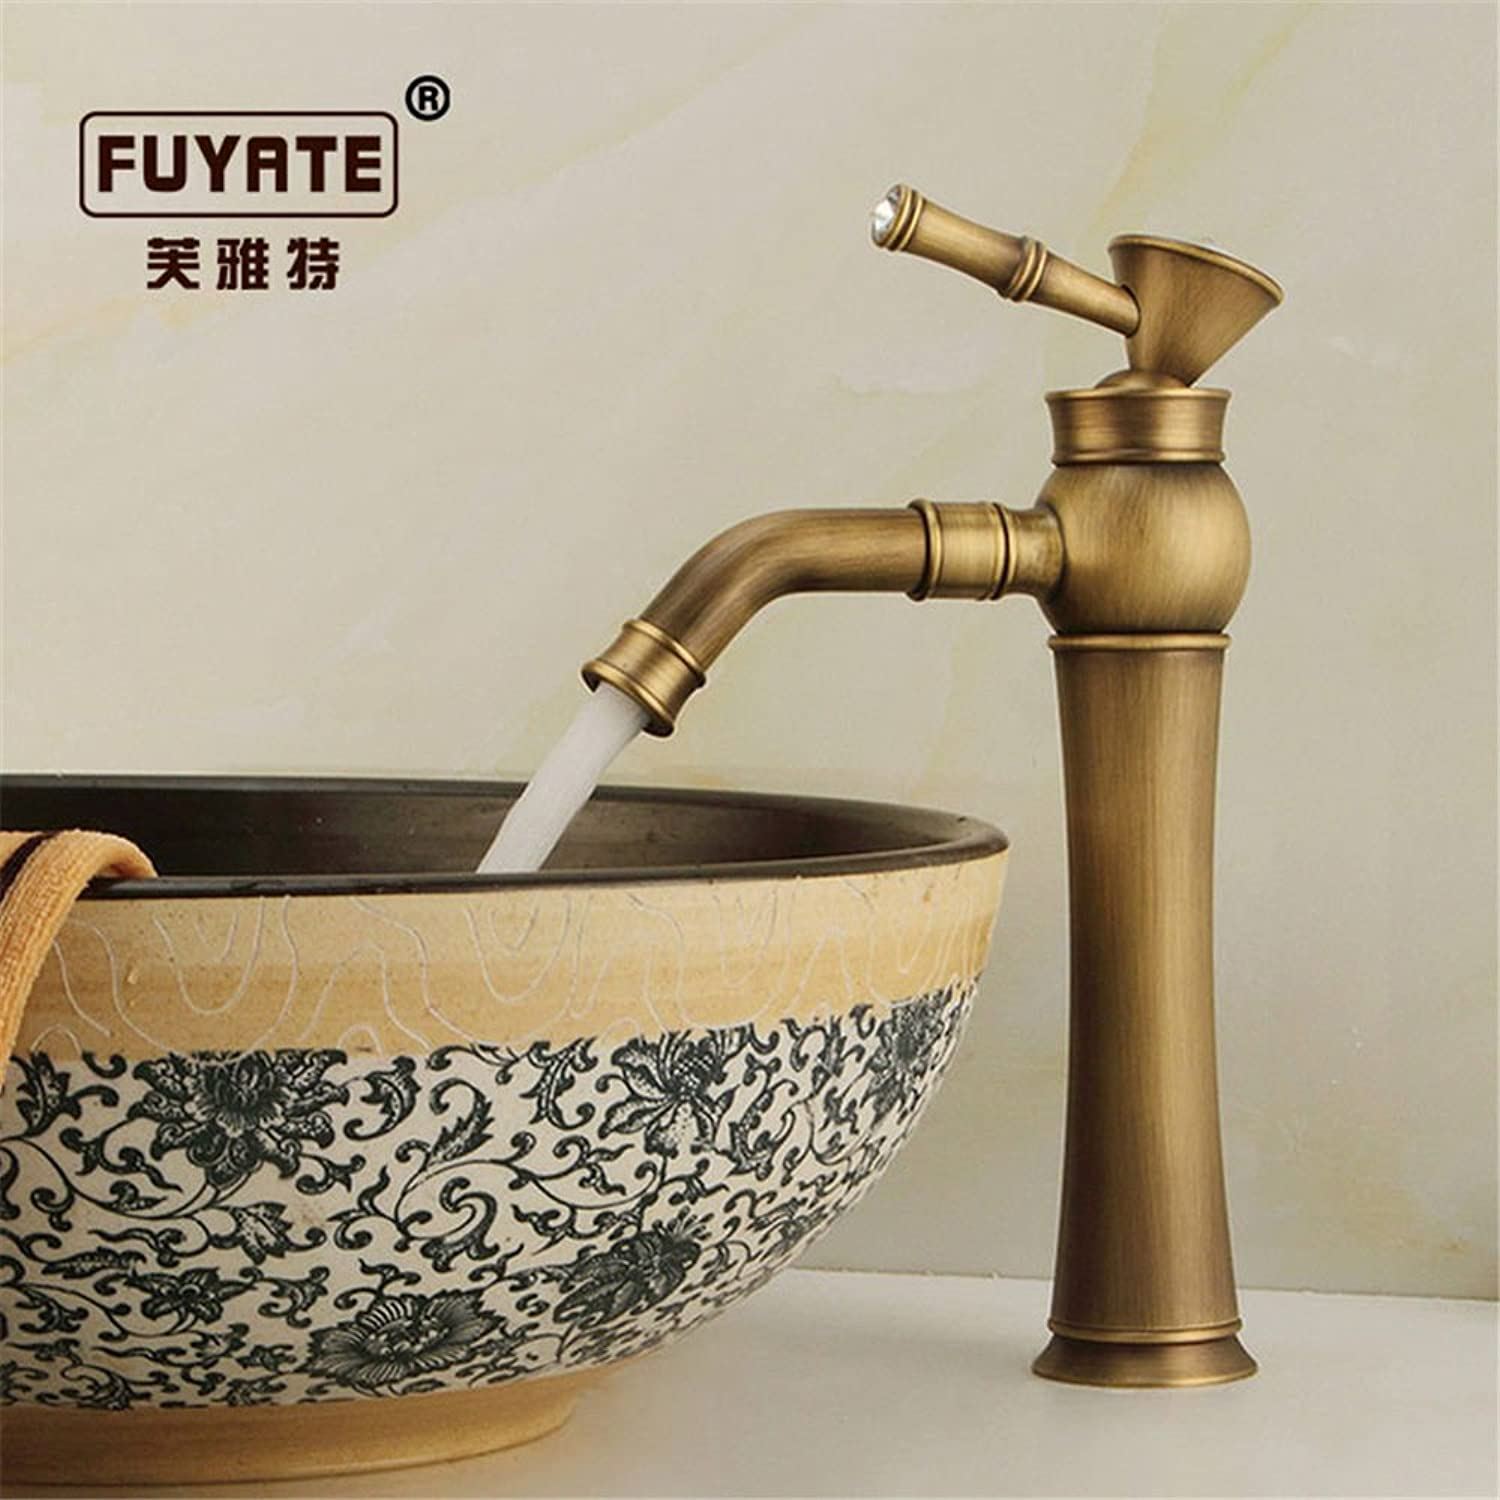 ETERNAL QUALITY Bathroom Sink Basin Tap Brass Mixer Tap Washroom Mixer Faucet The golden faucet hot and cold taps full copper bathroom plus high diamond gold plated antiq